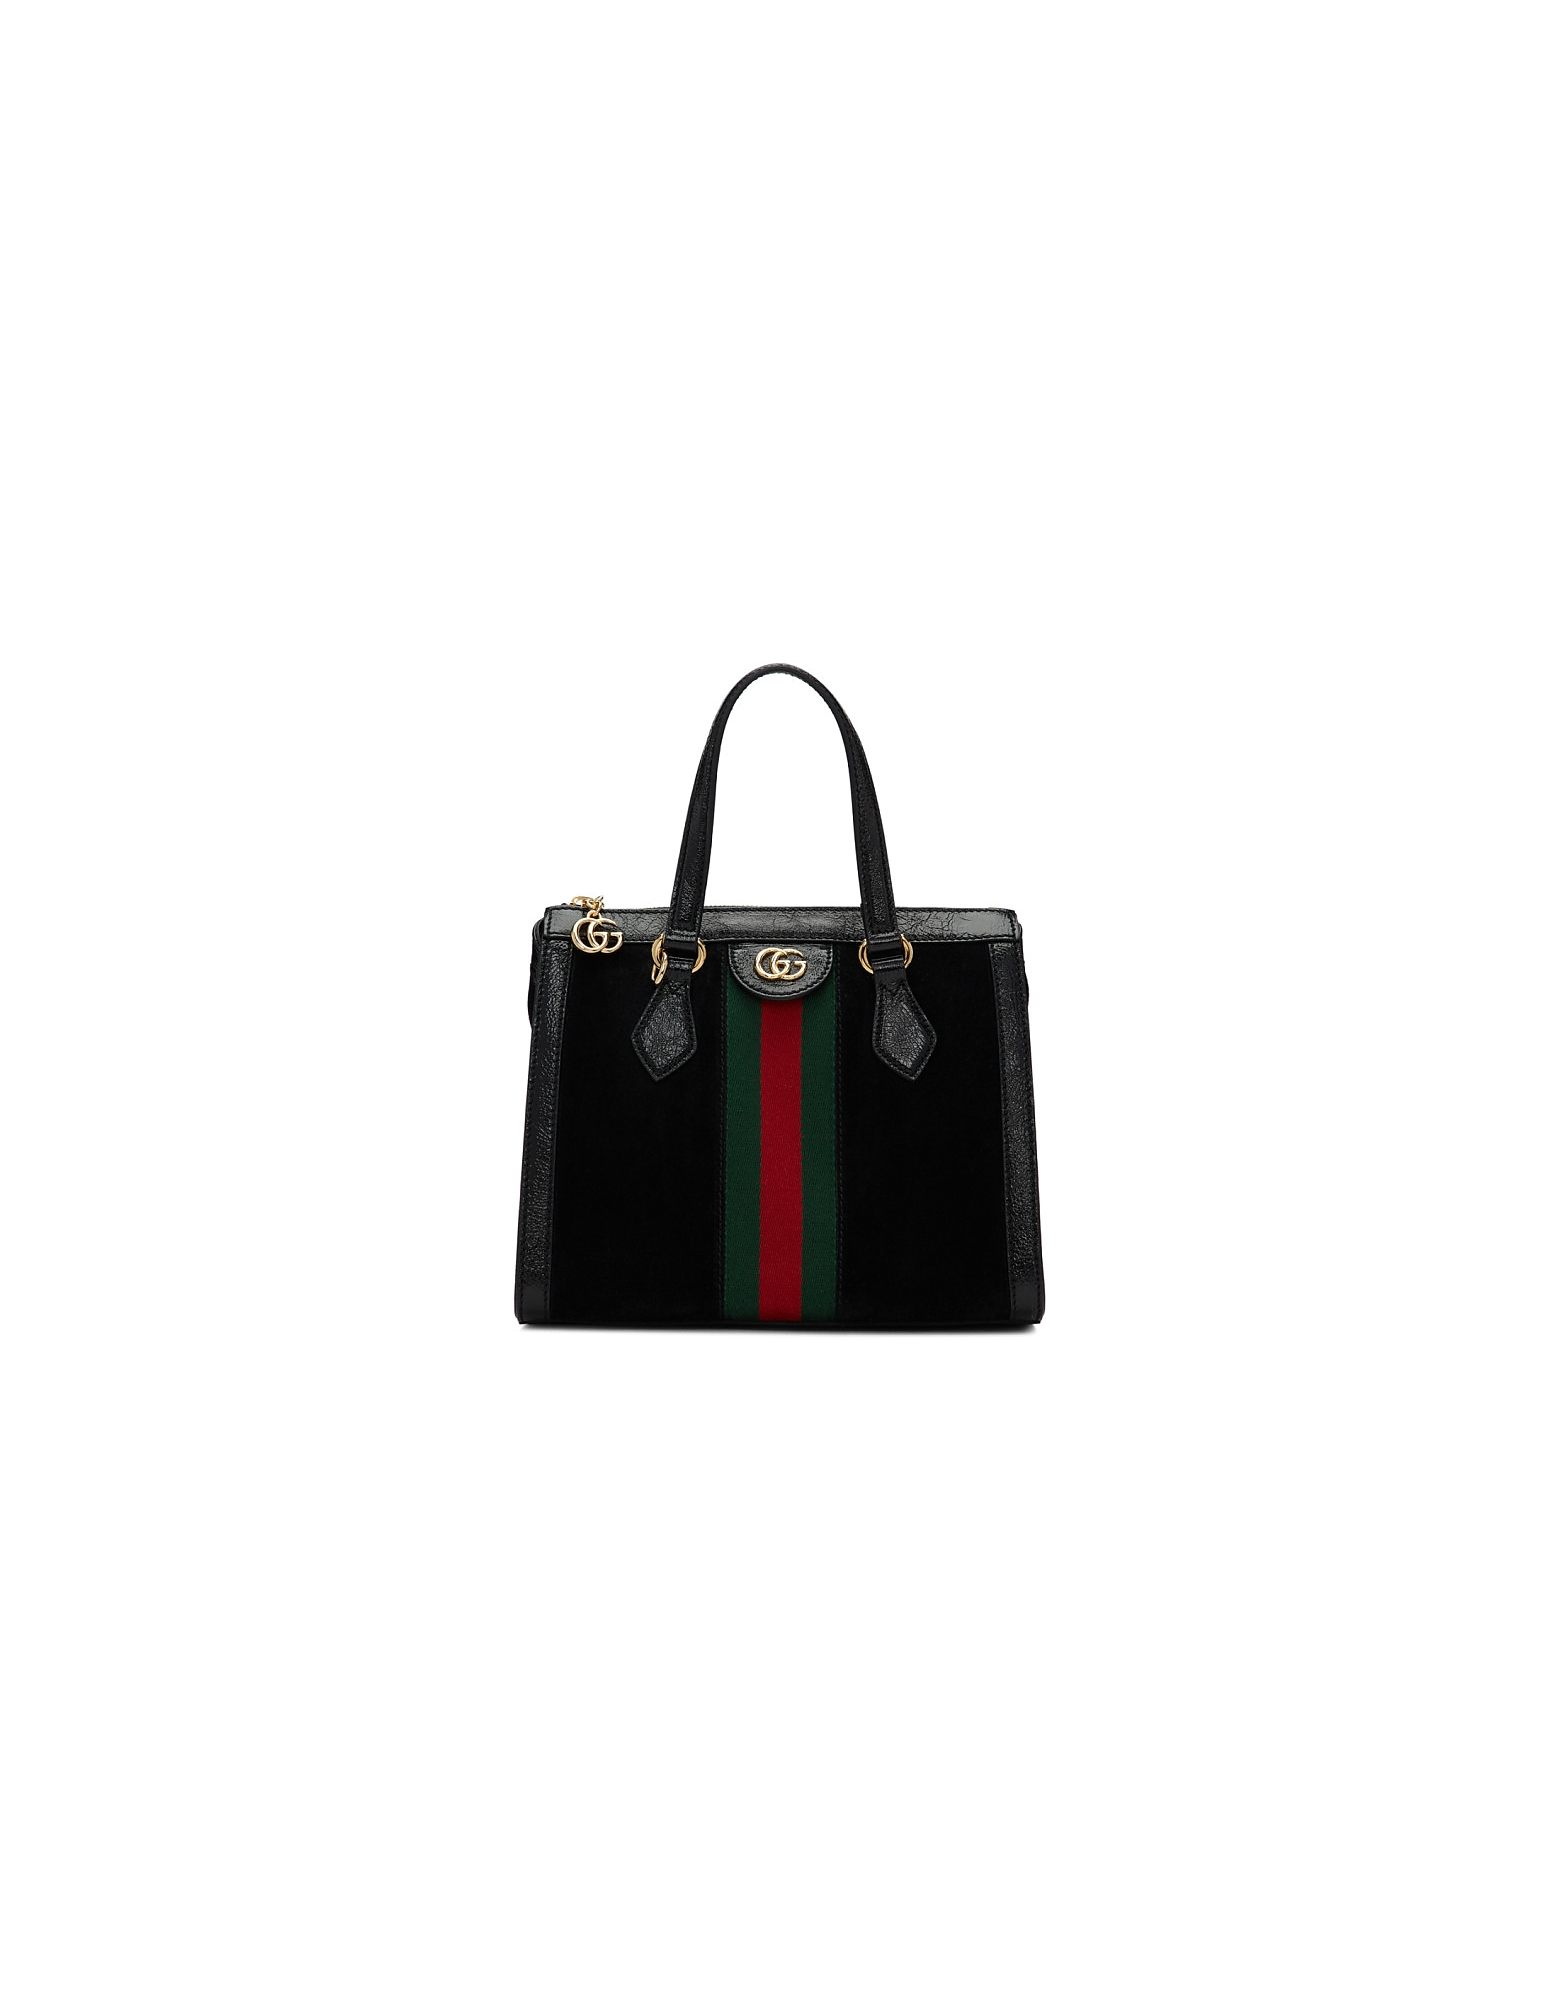 Gucci Designer Handbags, Black Small Suede Ophidia Bag